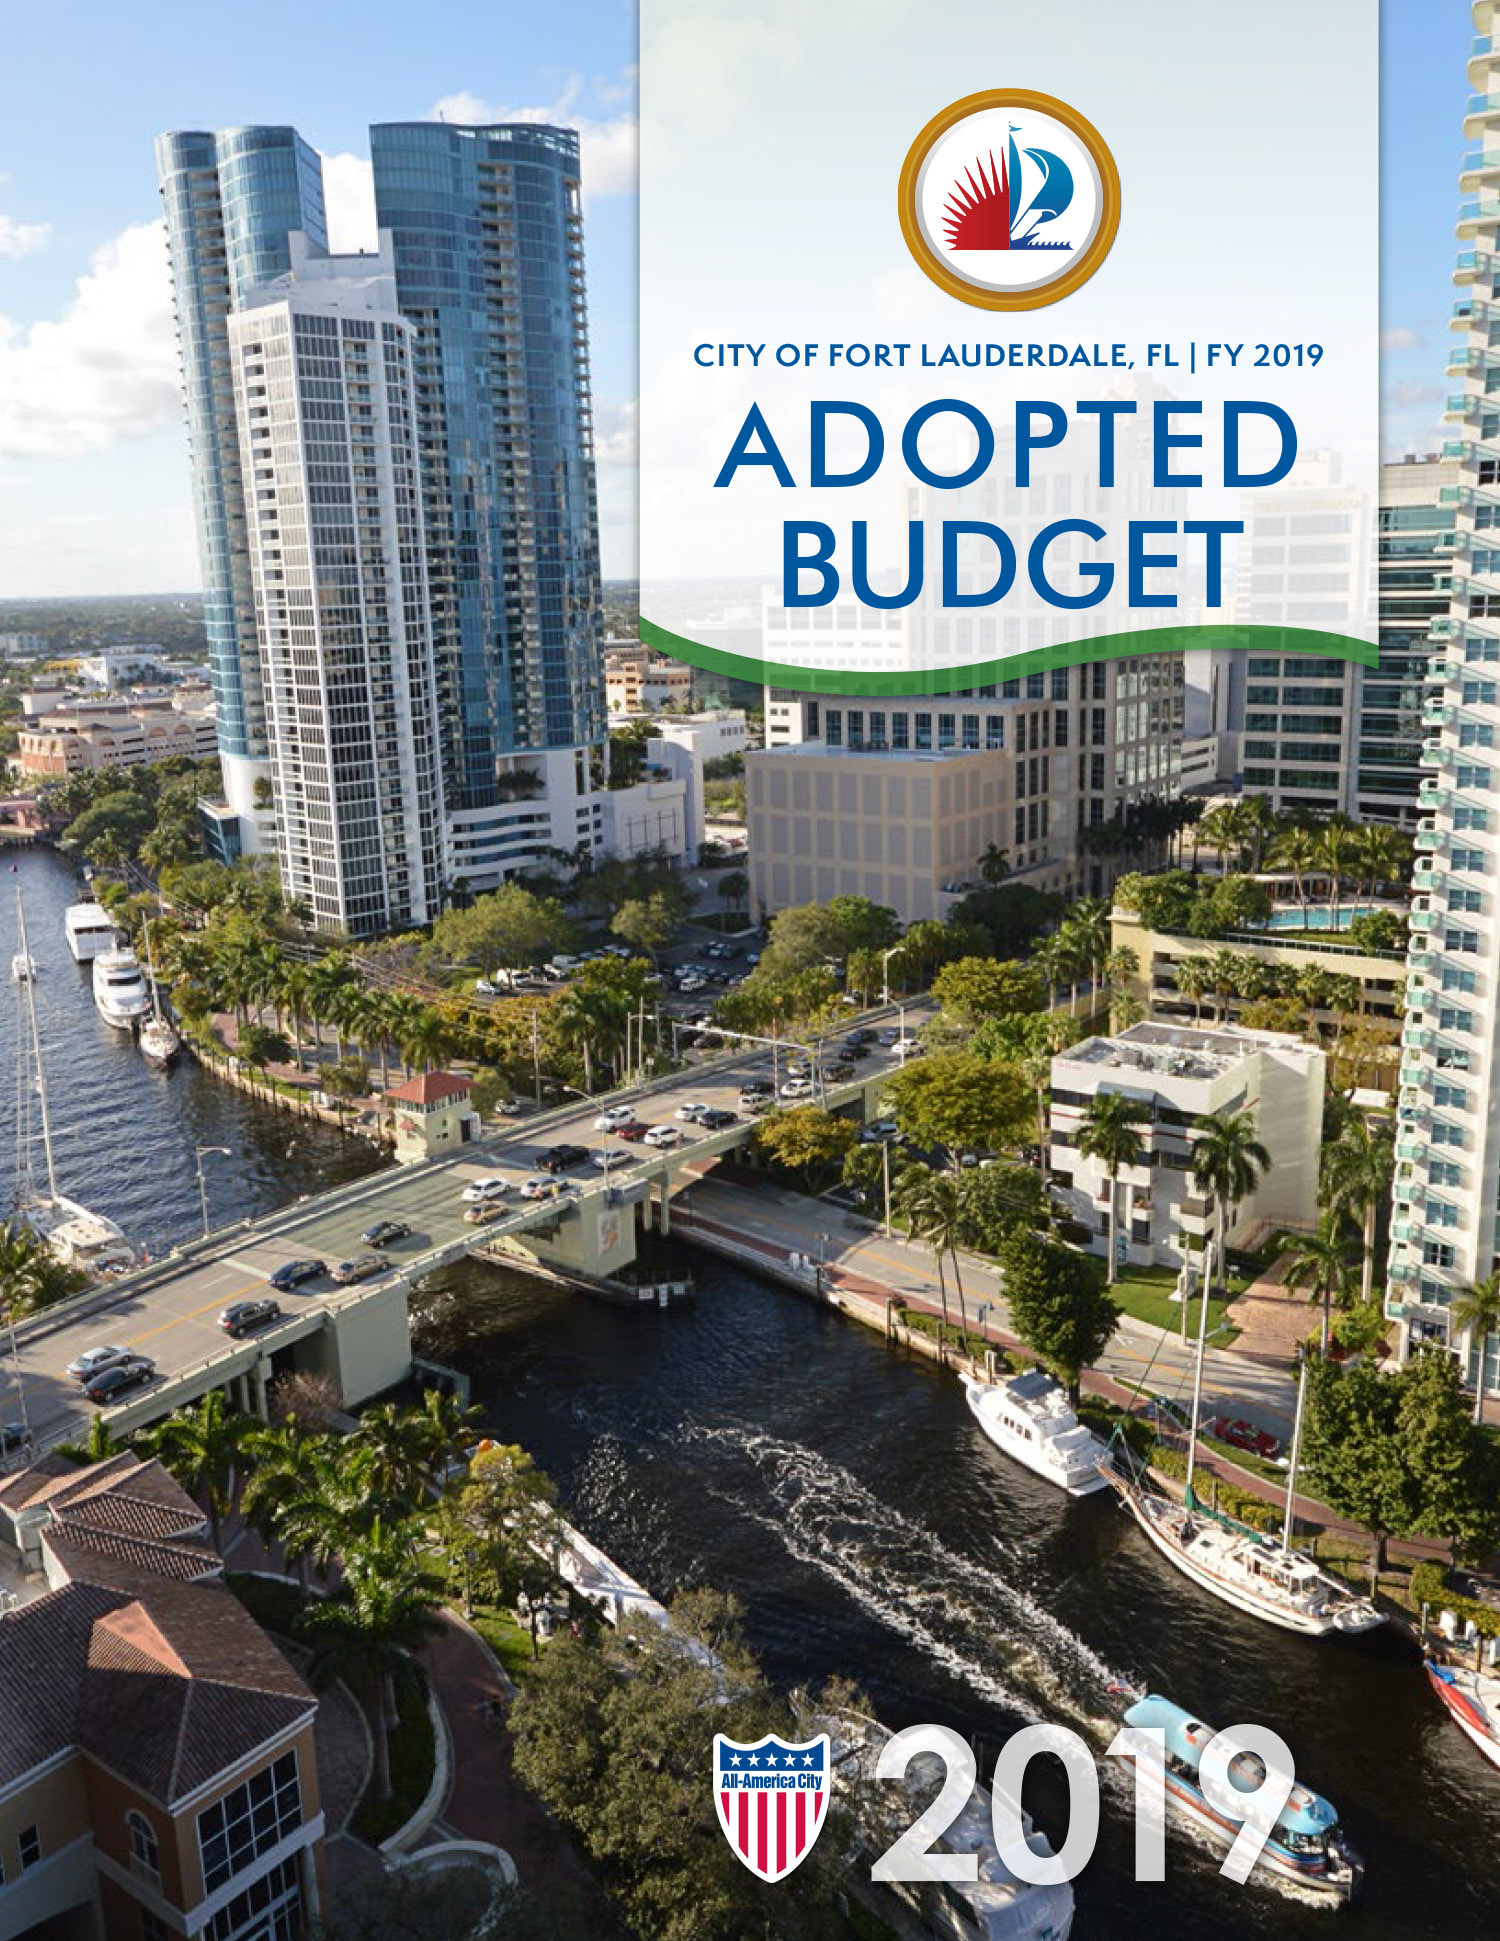 4580 Budget Cover 2019_Adopted_5-24-18_Final WEB-1